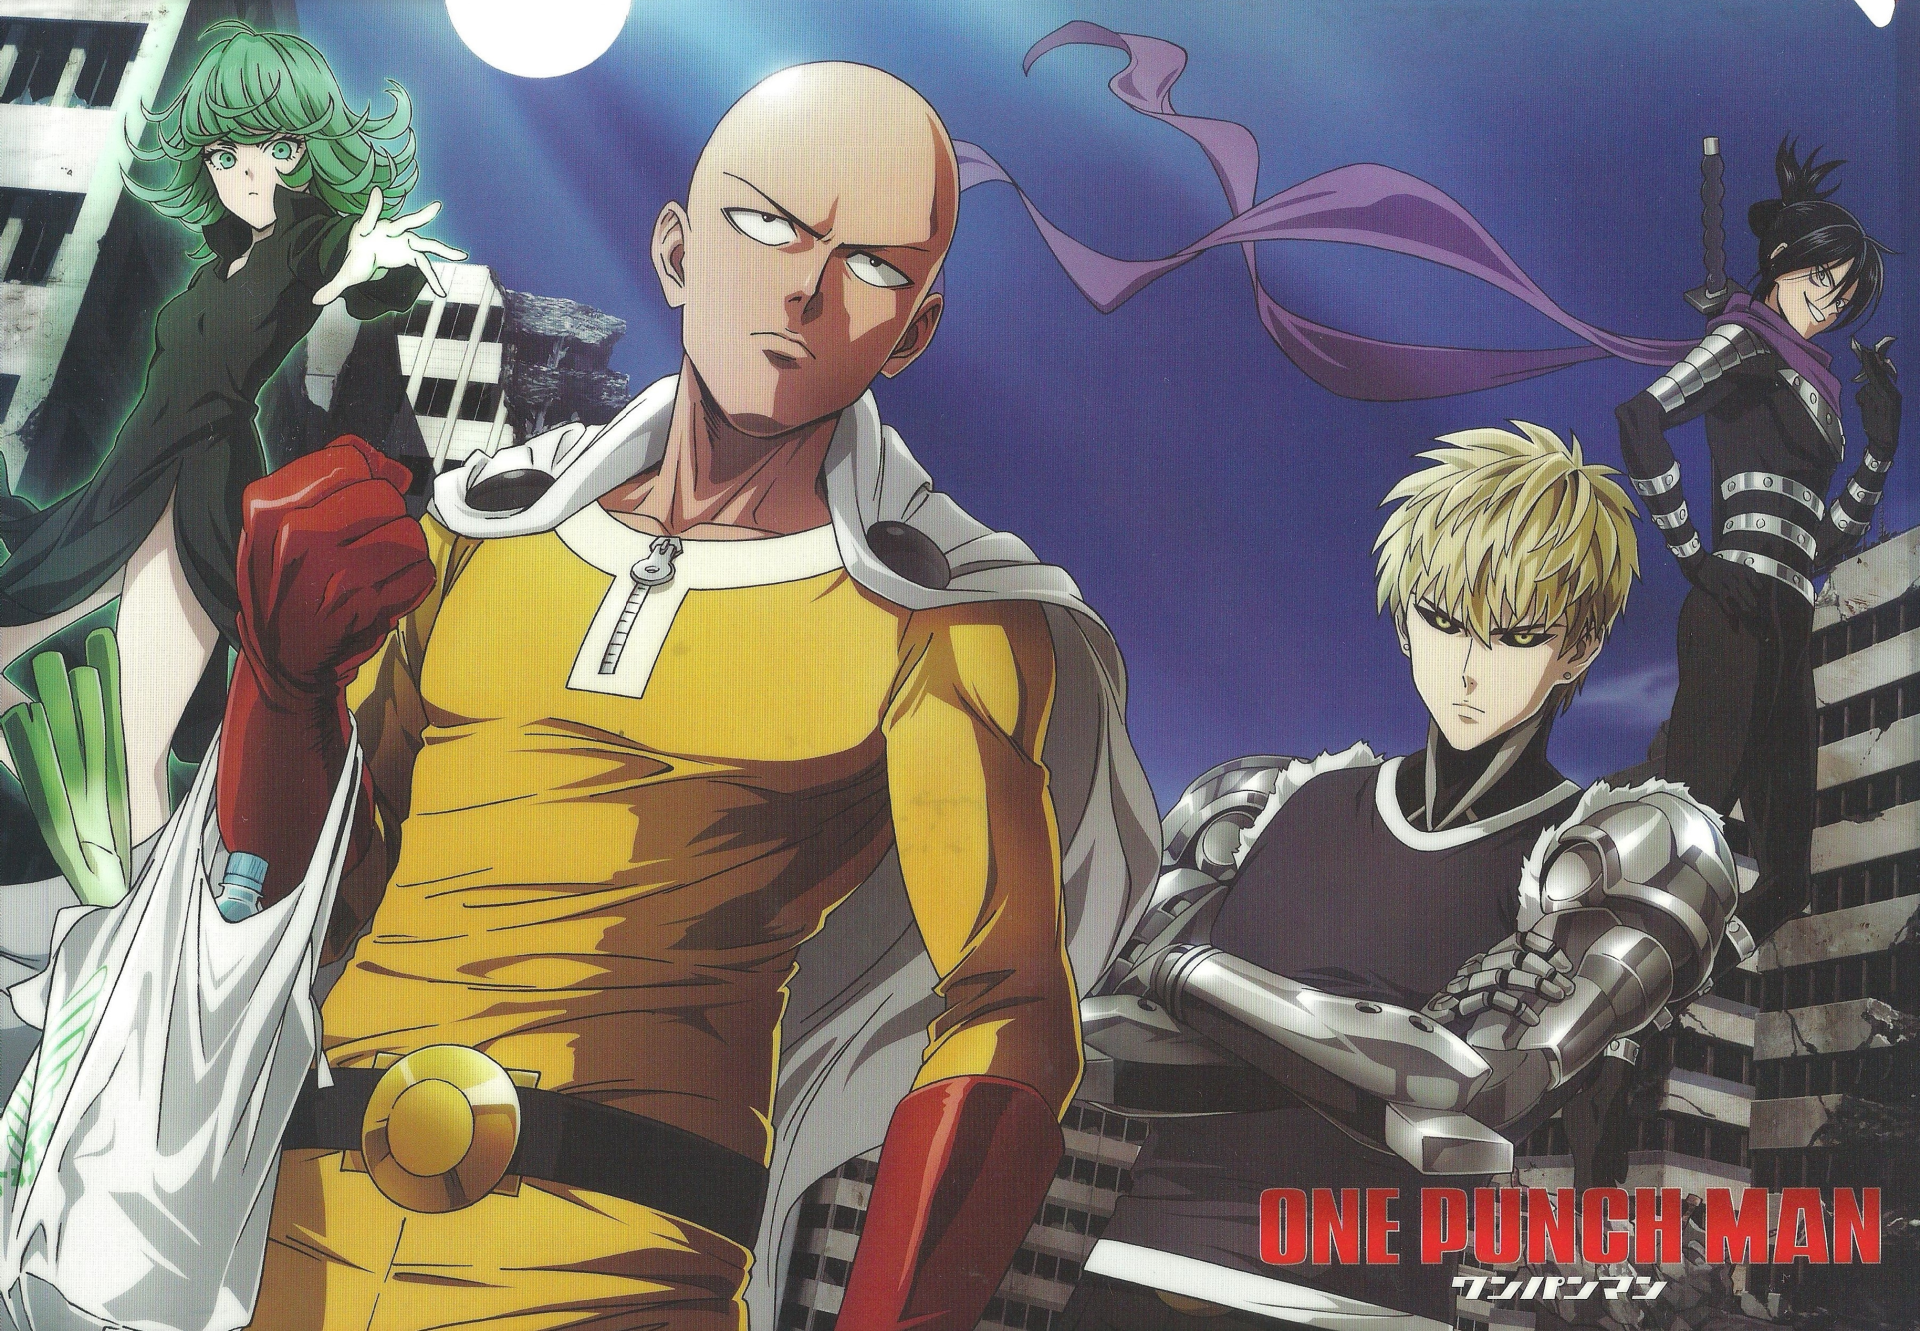 One punch man full hd wallpaper and background image - Funny one punch man wallpaper ...